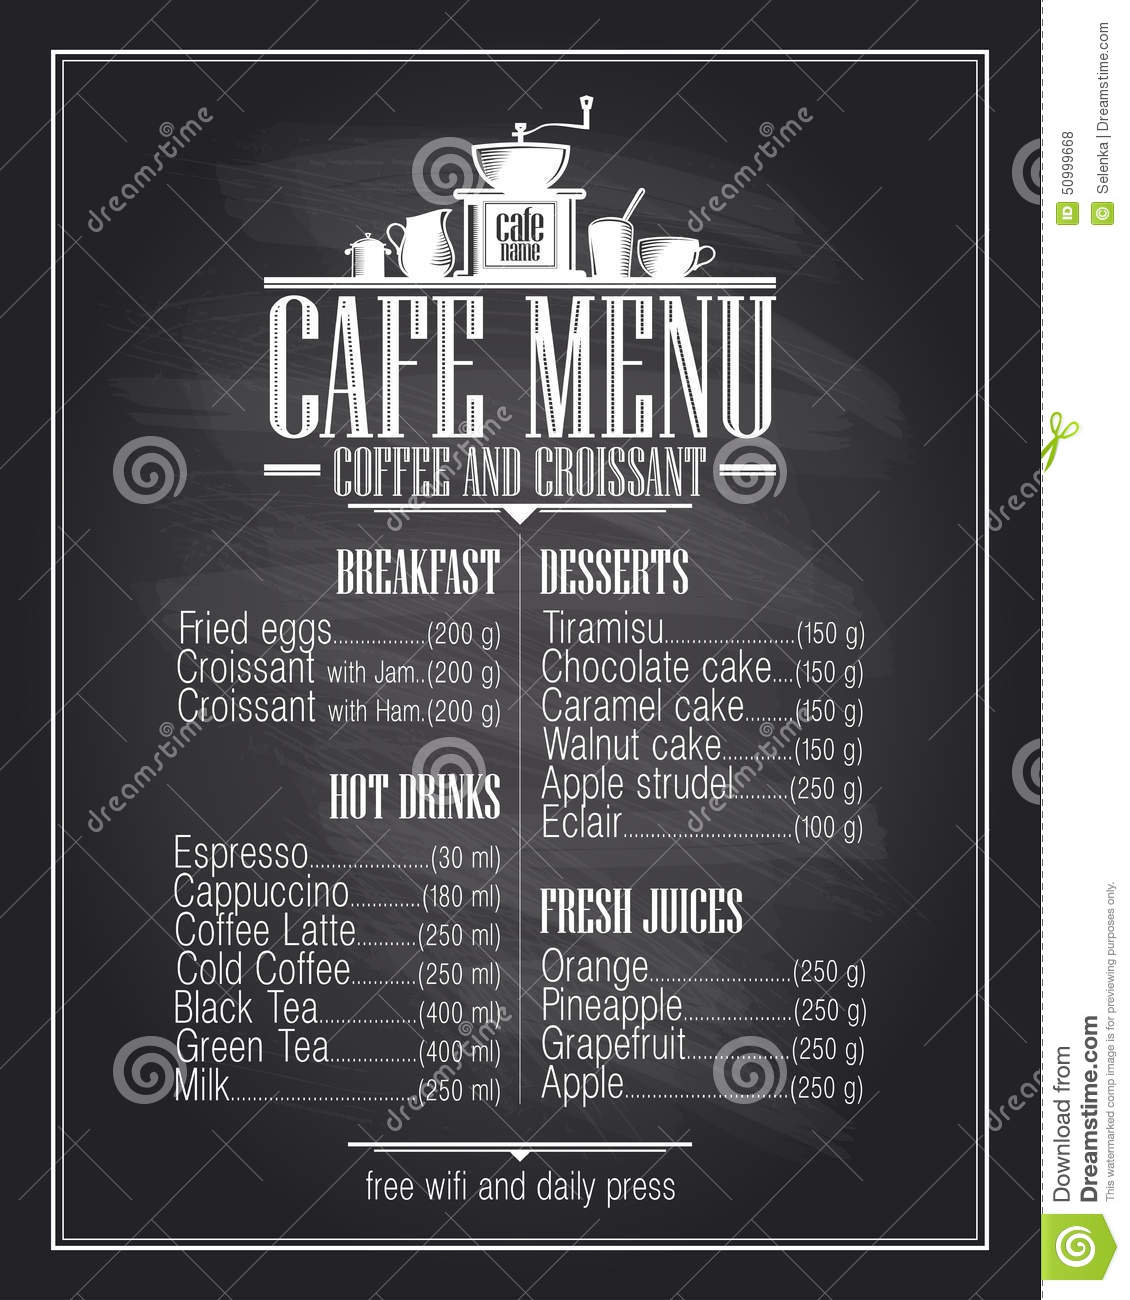 Home Design Ideas Blackboard: Chalkboard Cafe Menu List Design With Dishes Name. Stock